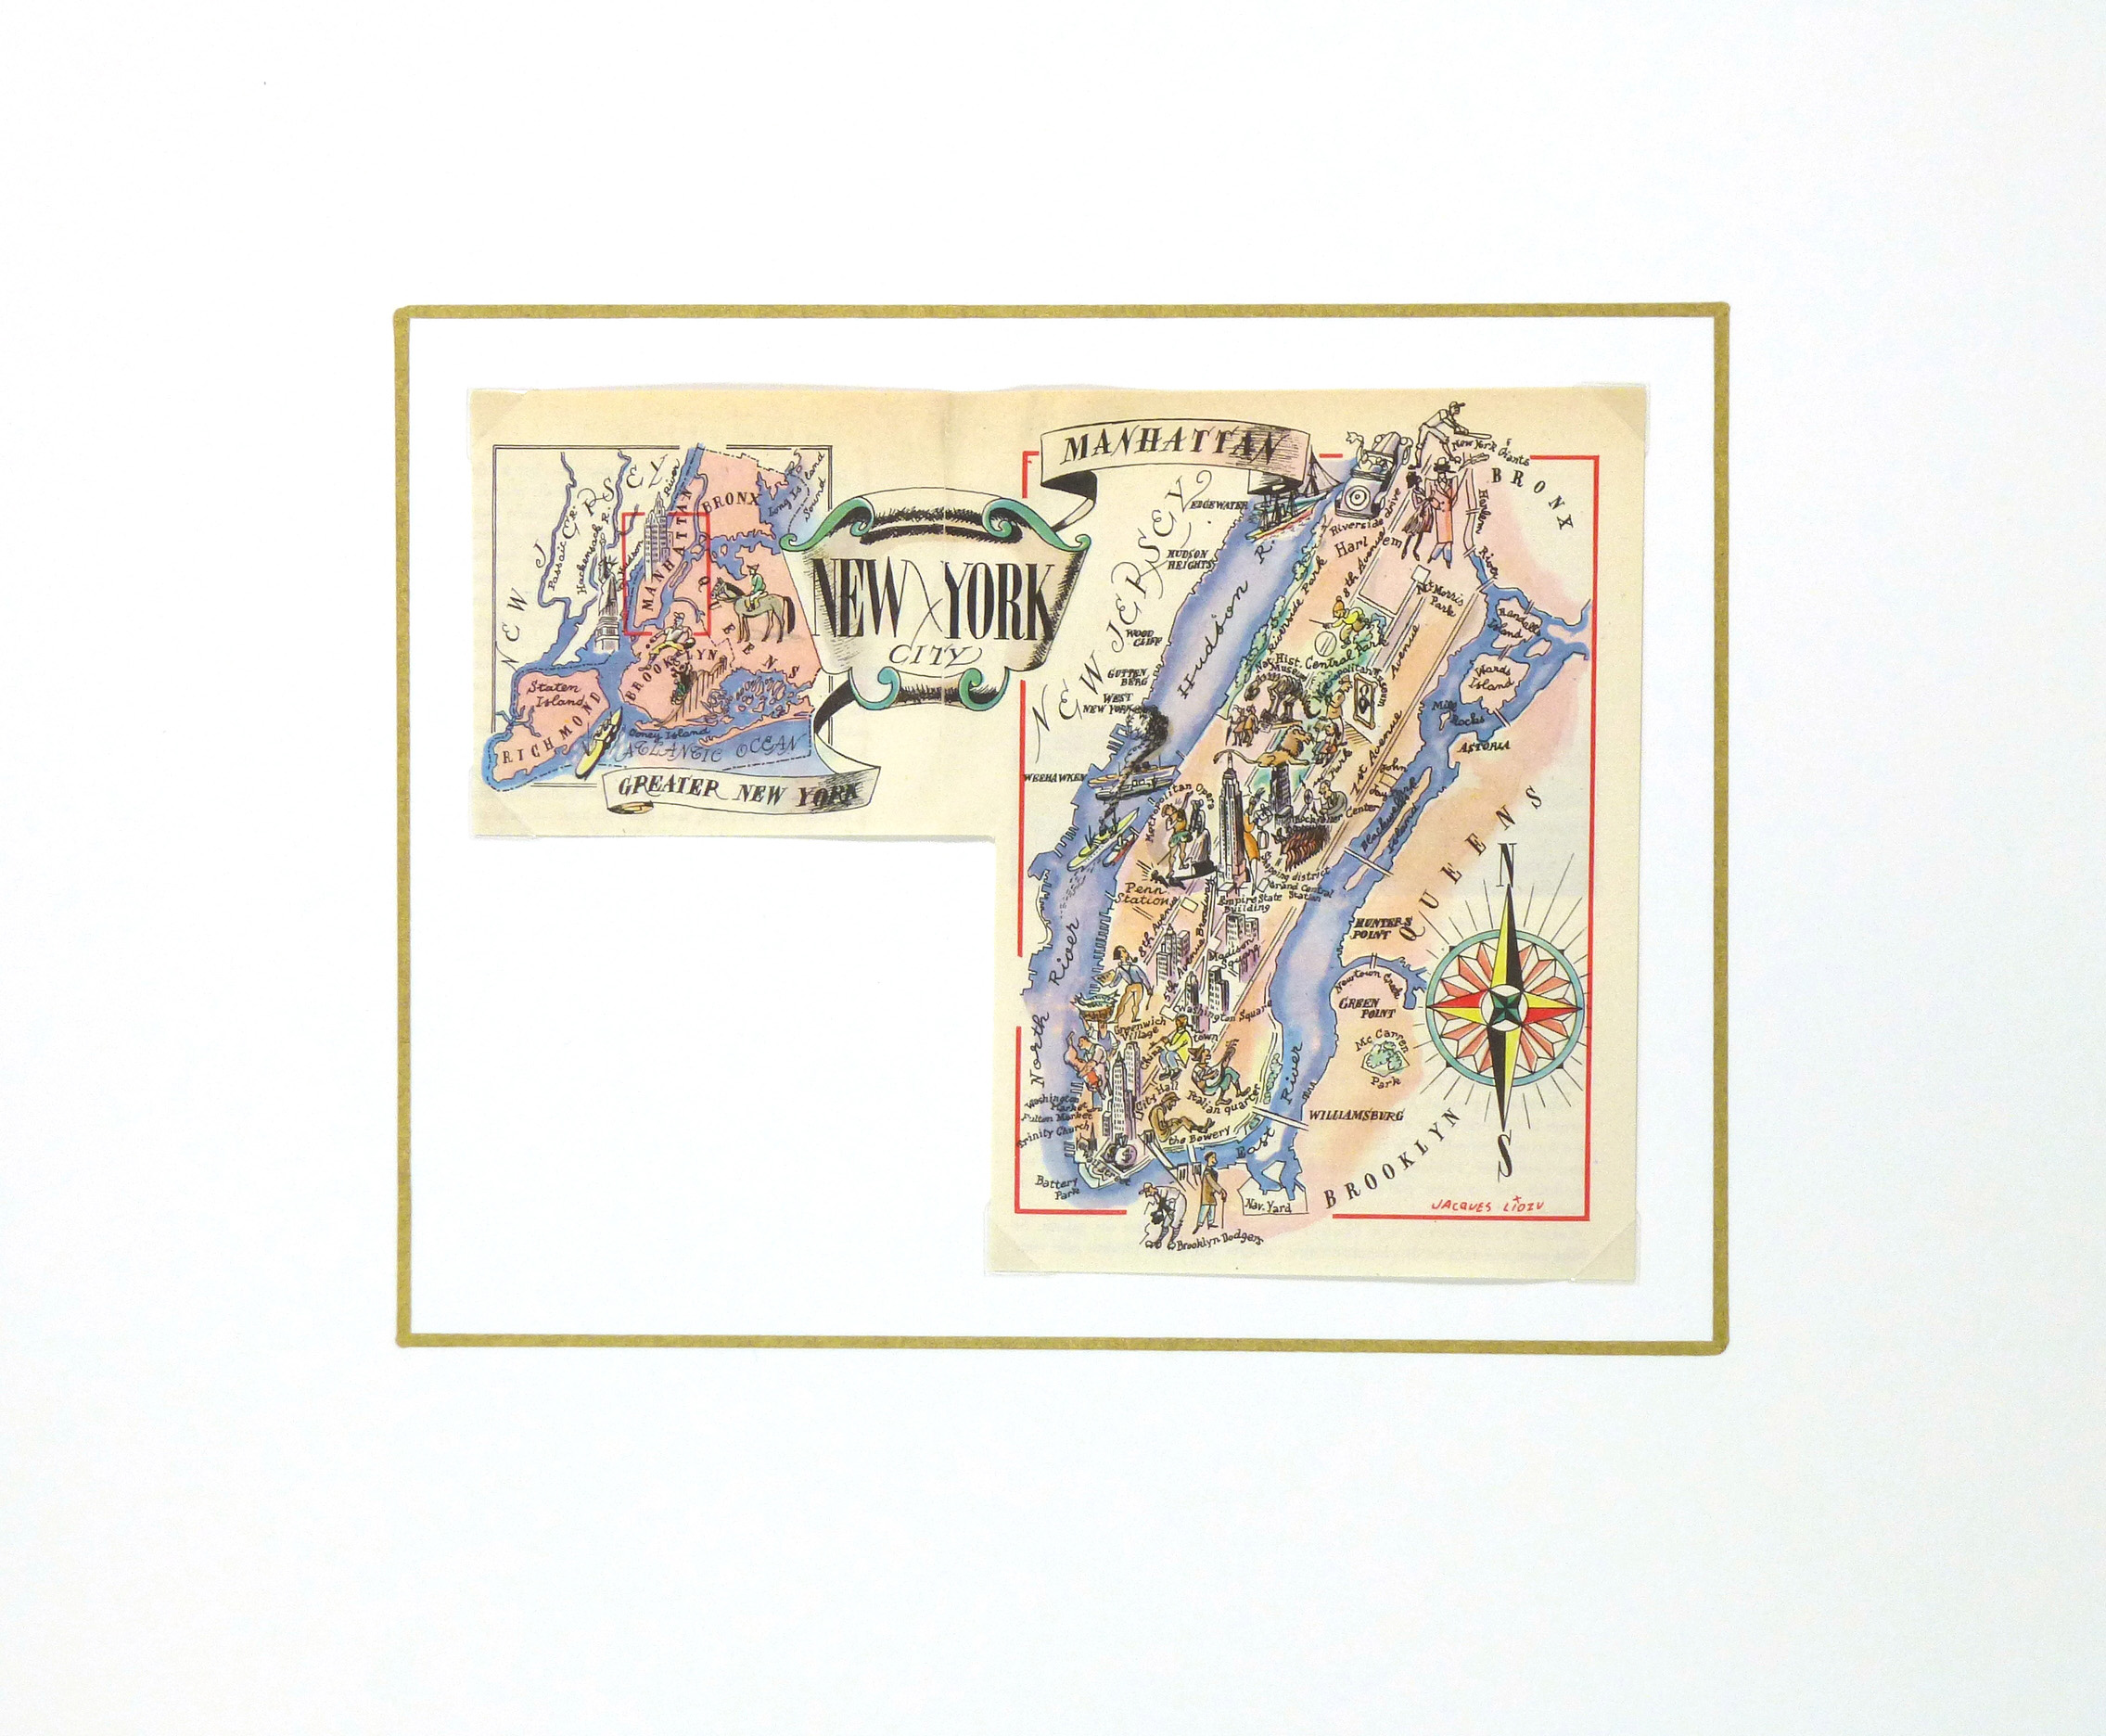 New York City Pictorial Map, 1946-matted-6265K